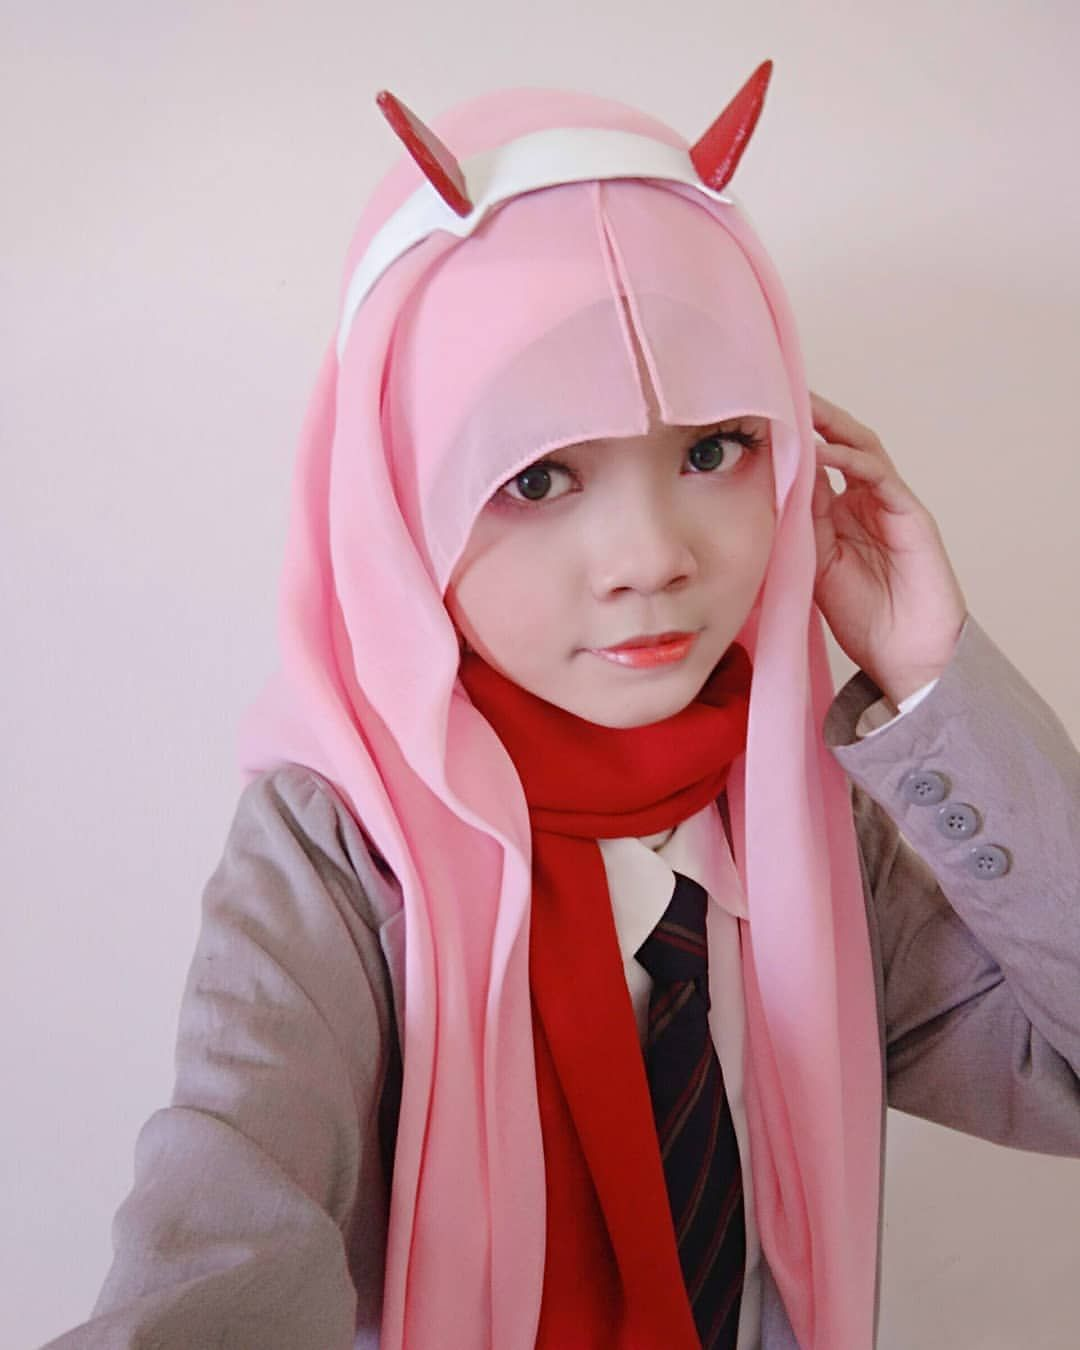 Ai Nurul Ai Nurul I Almost Forgot About This I M Cosplaying As Zero Two From Anime Darling In The Franxx In Hijab Style S Cute Cosplay Cosplay Zero Two